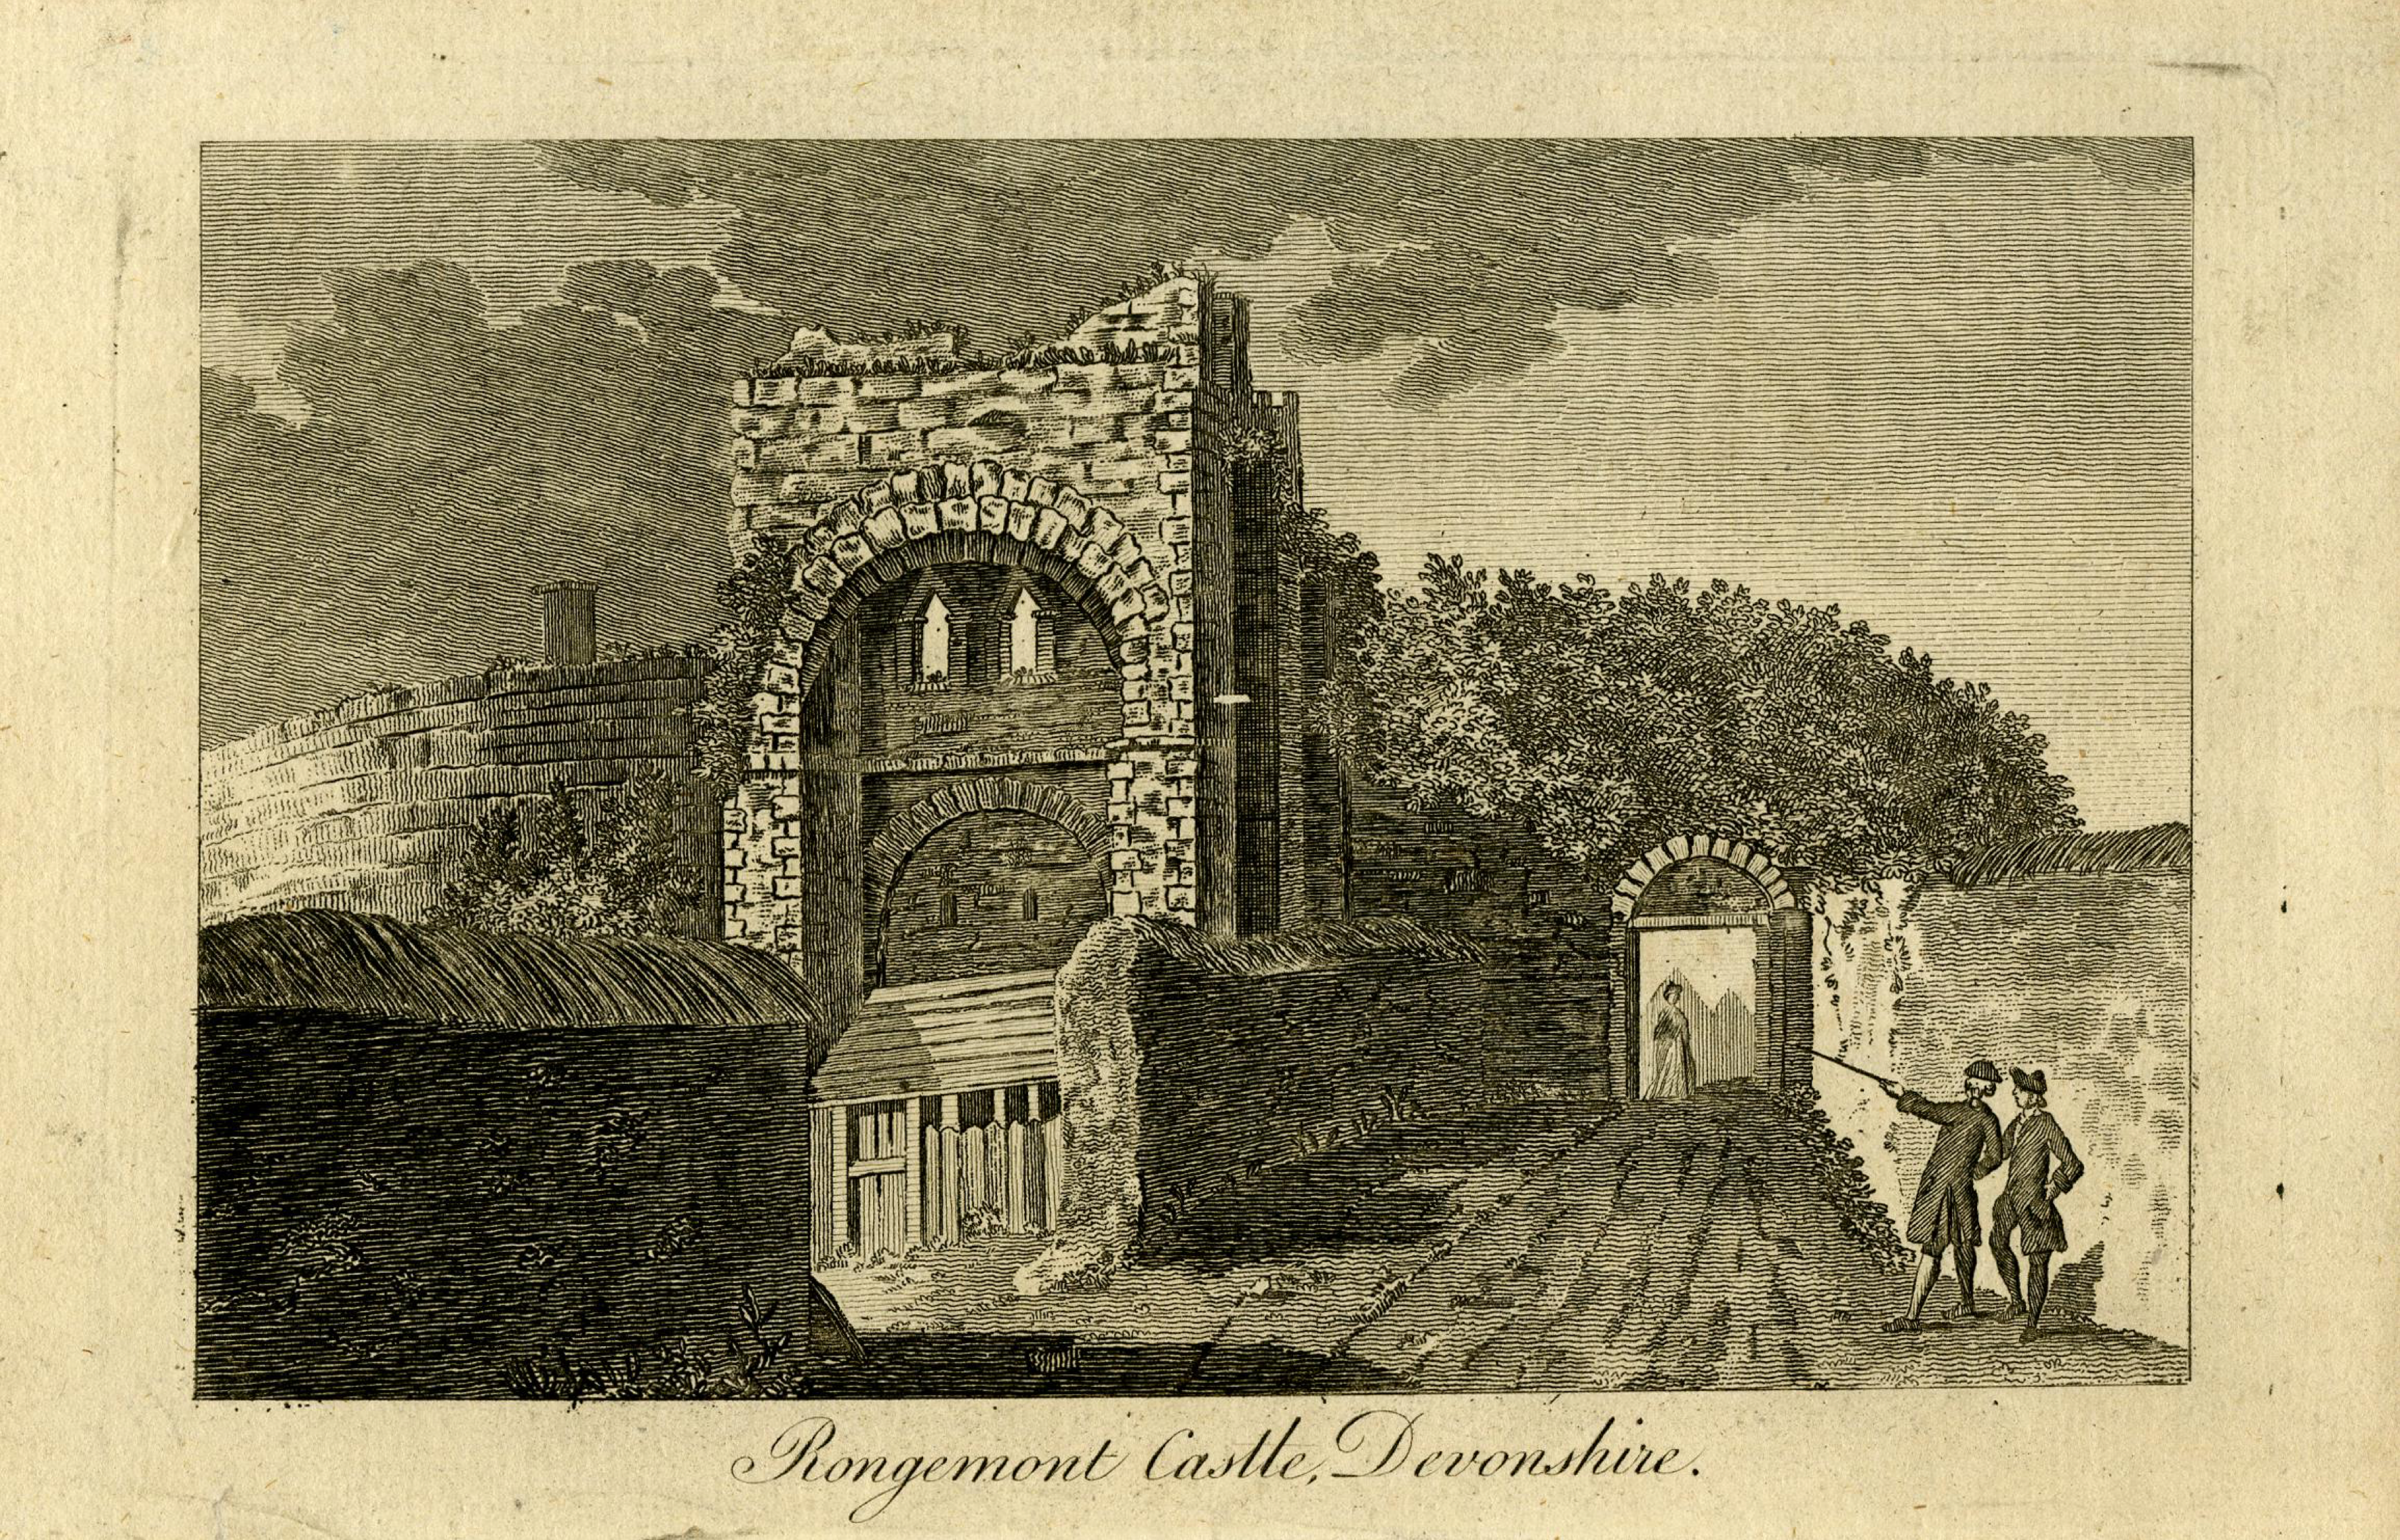 Rongemont Castle, Exeter